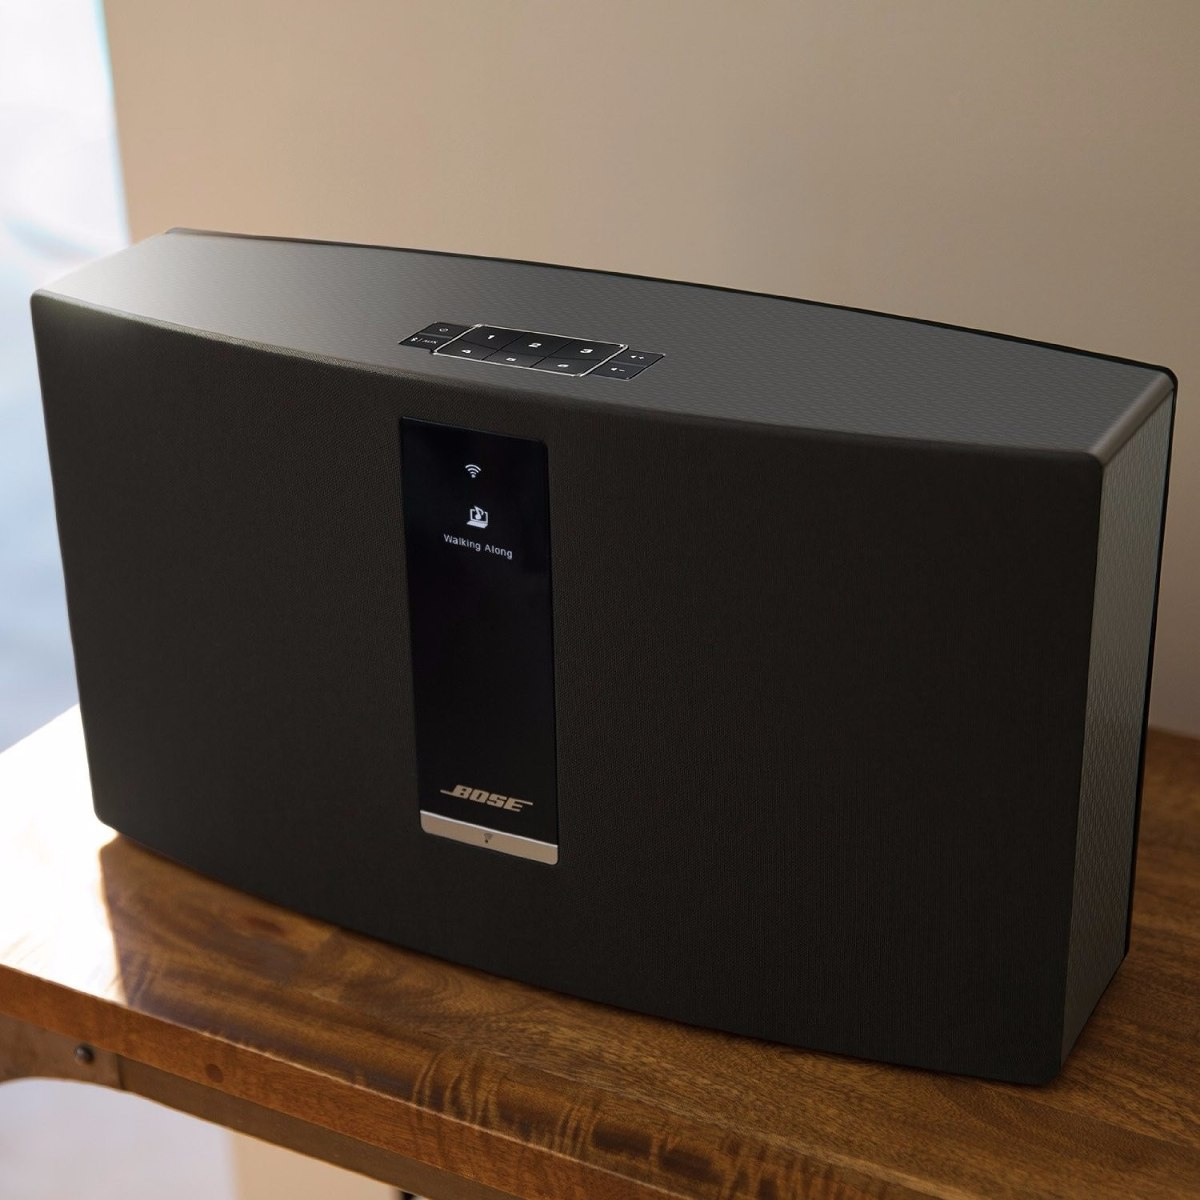 Musikanlage Bose Bocina Bose Soundtouch 30 Series Iii Wireless Music System